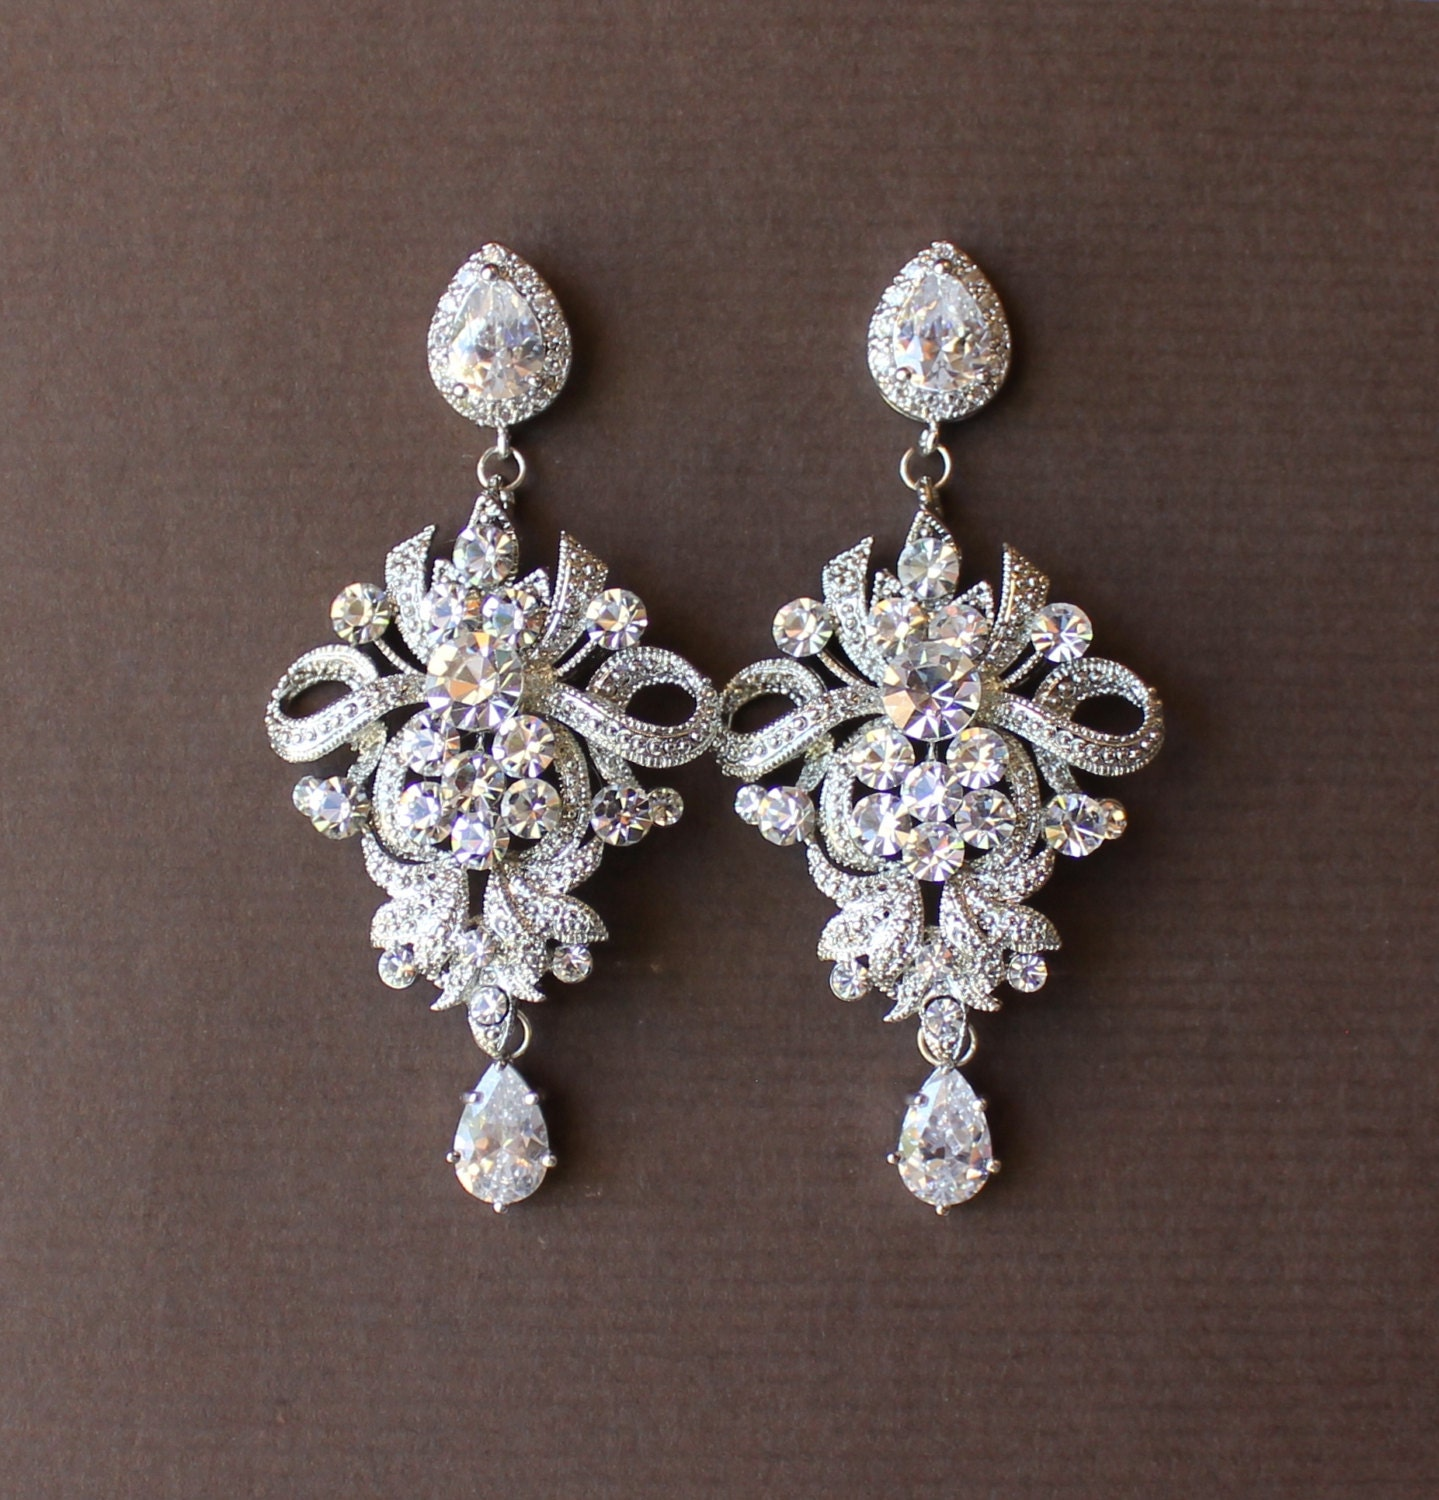 Wedding Chandelier Earrings Crystal Bridal Earrings by ...